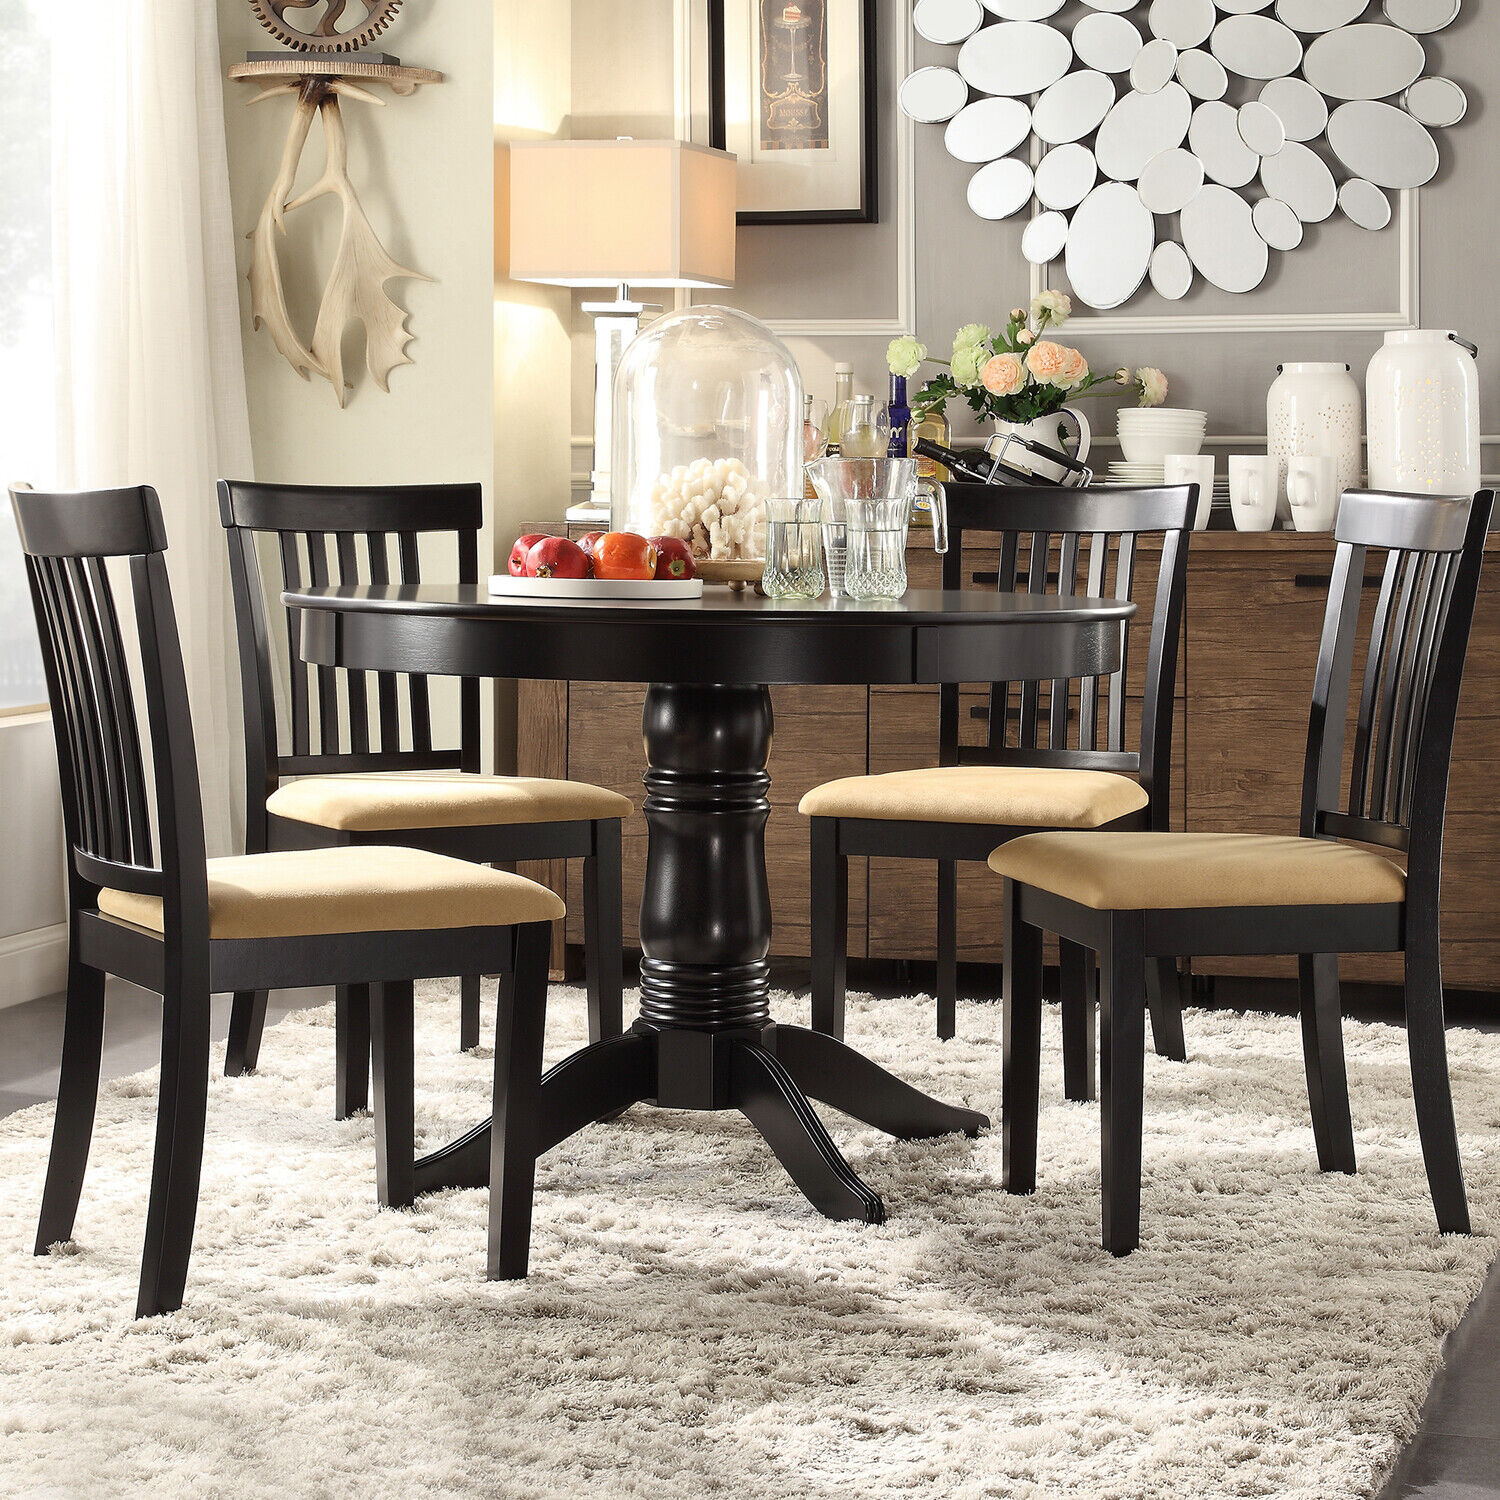 Weston Home Lexington 5 Piece Round Dining Table Set With Window Back Chairs Oak For Sale Online Ebay